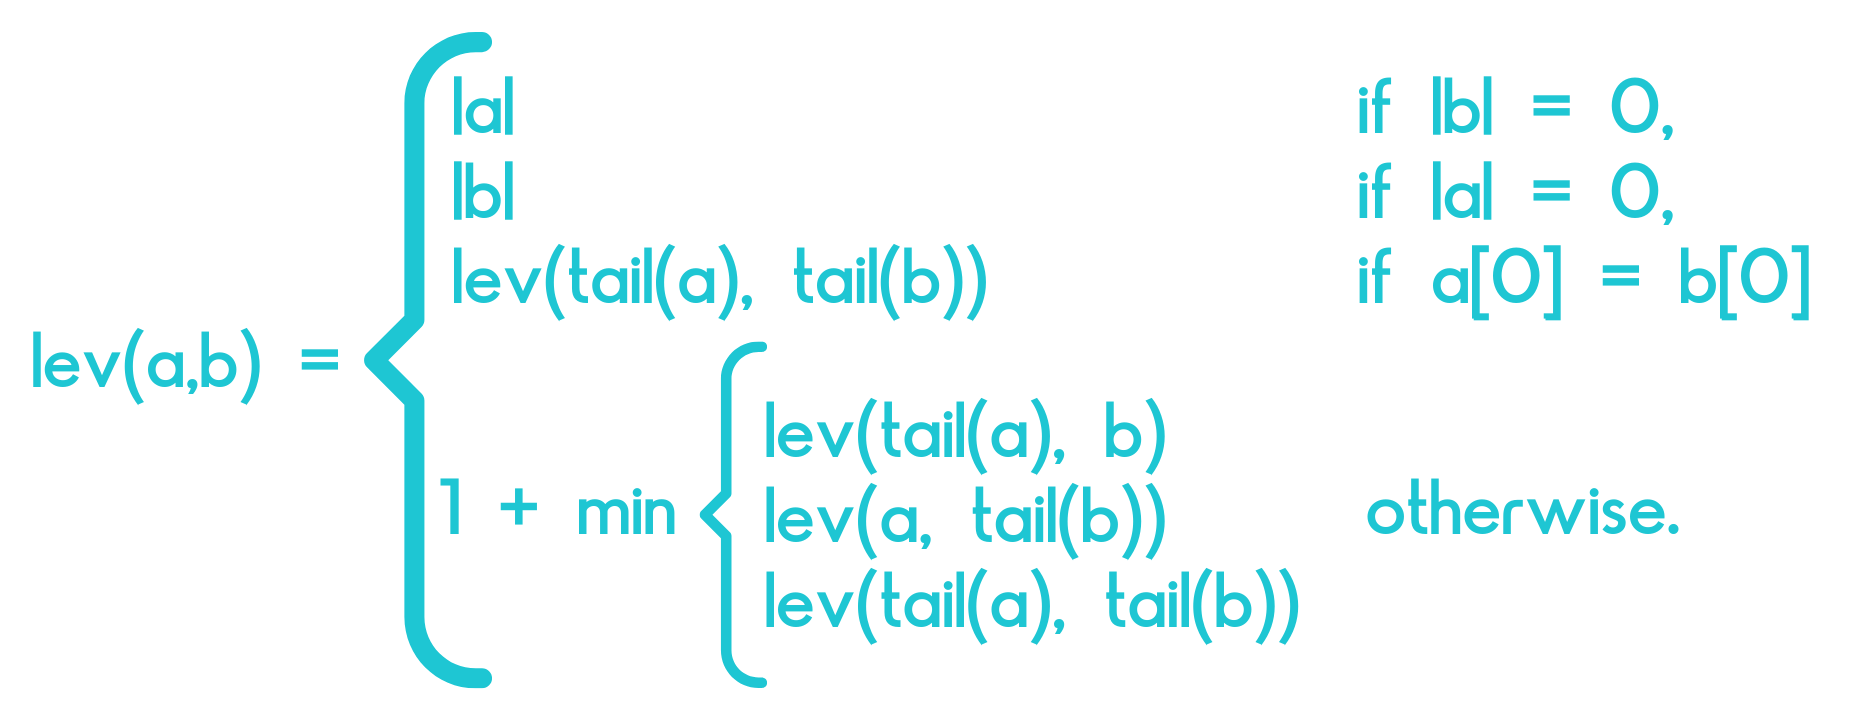 Levenshtein distance calculation formula